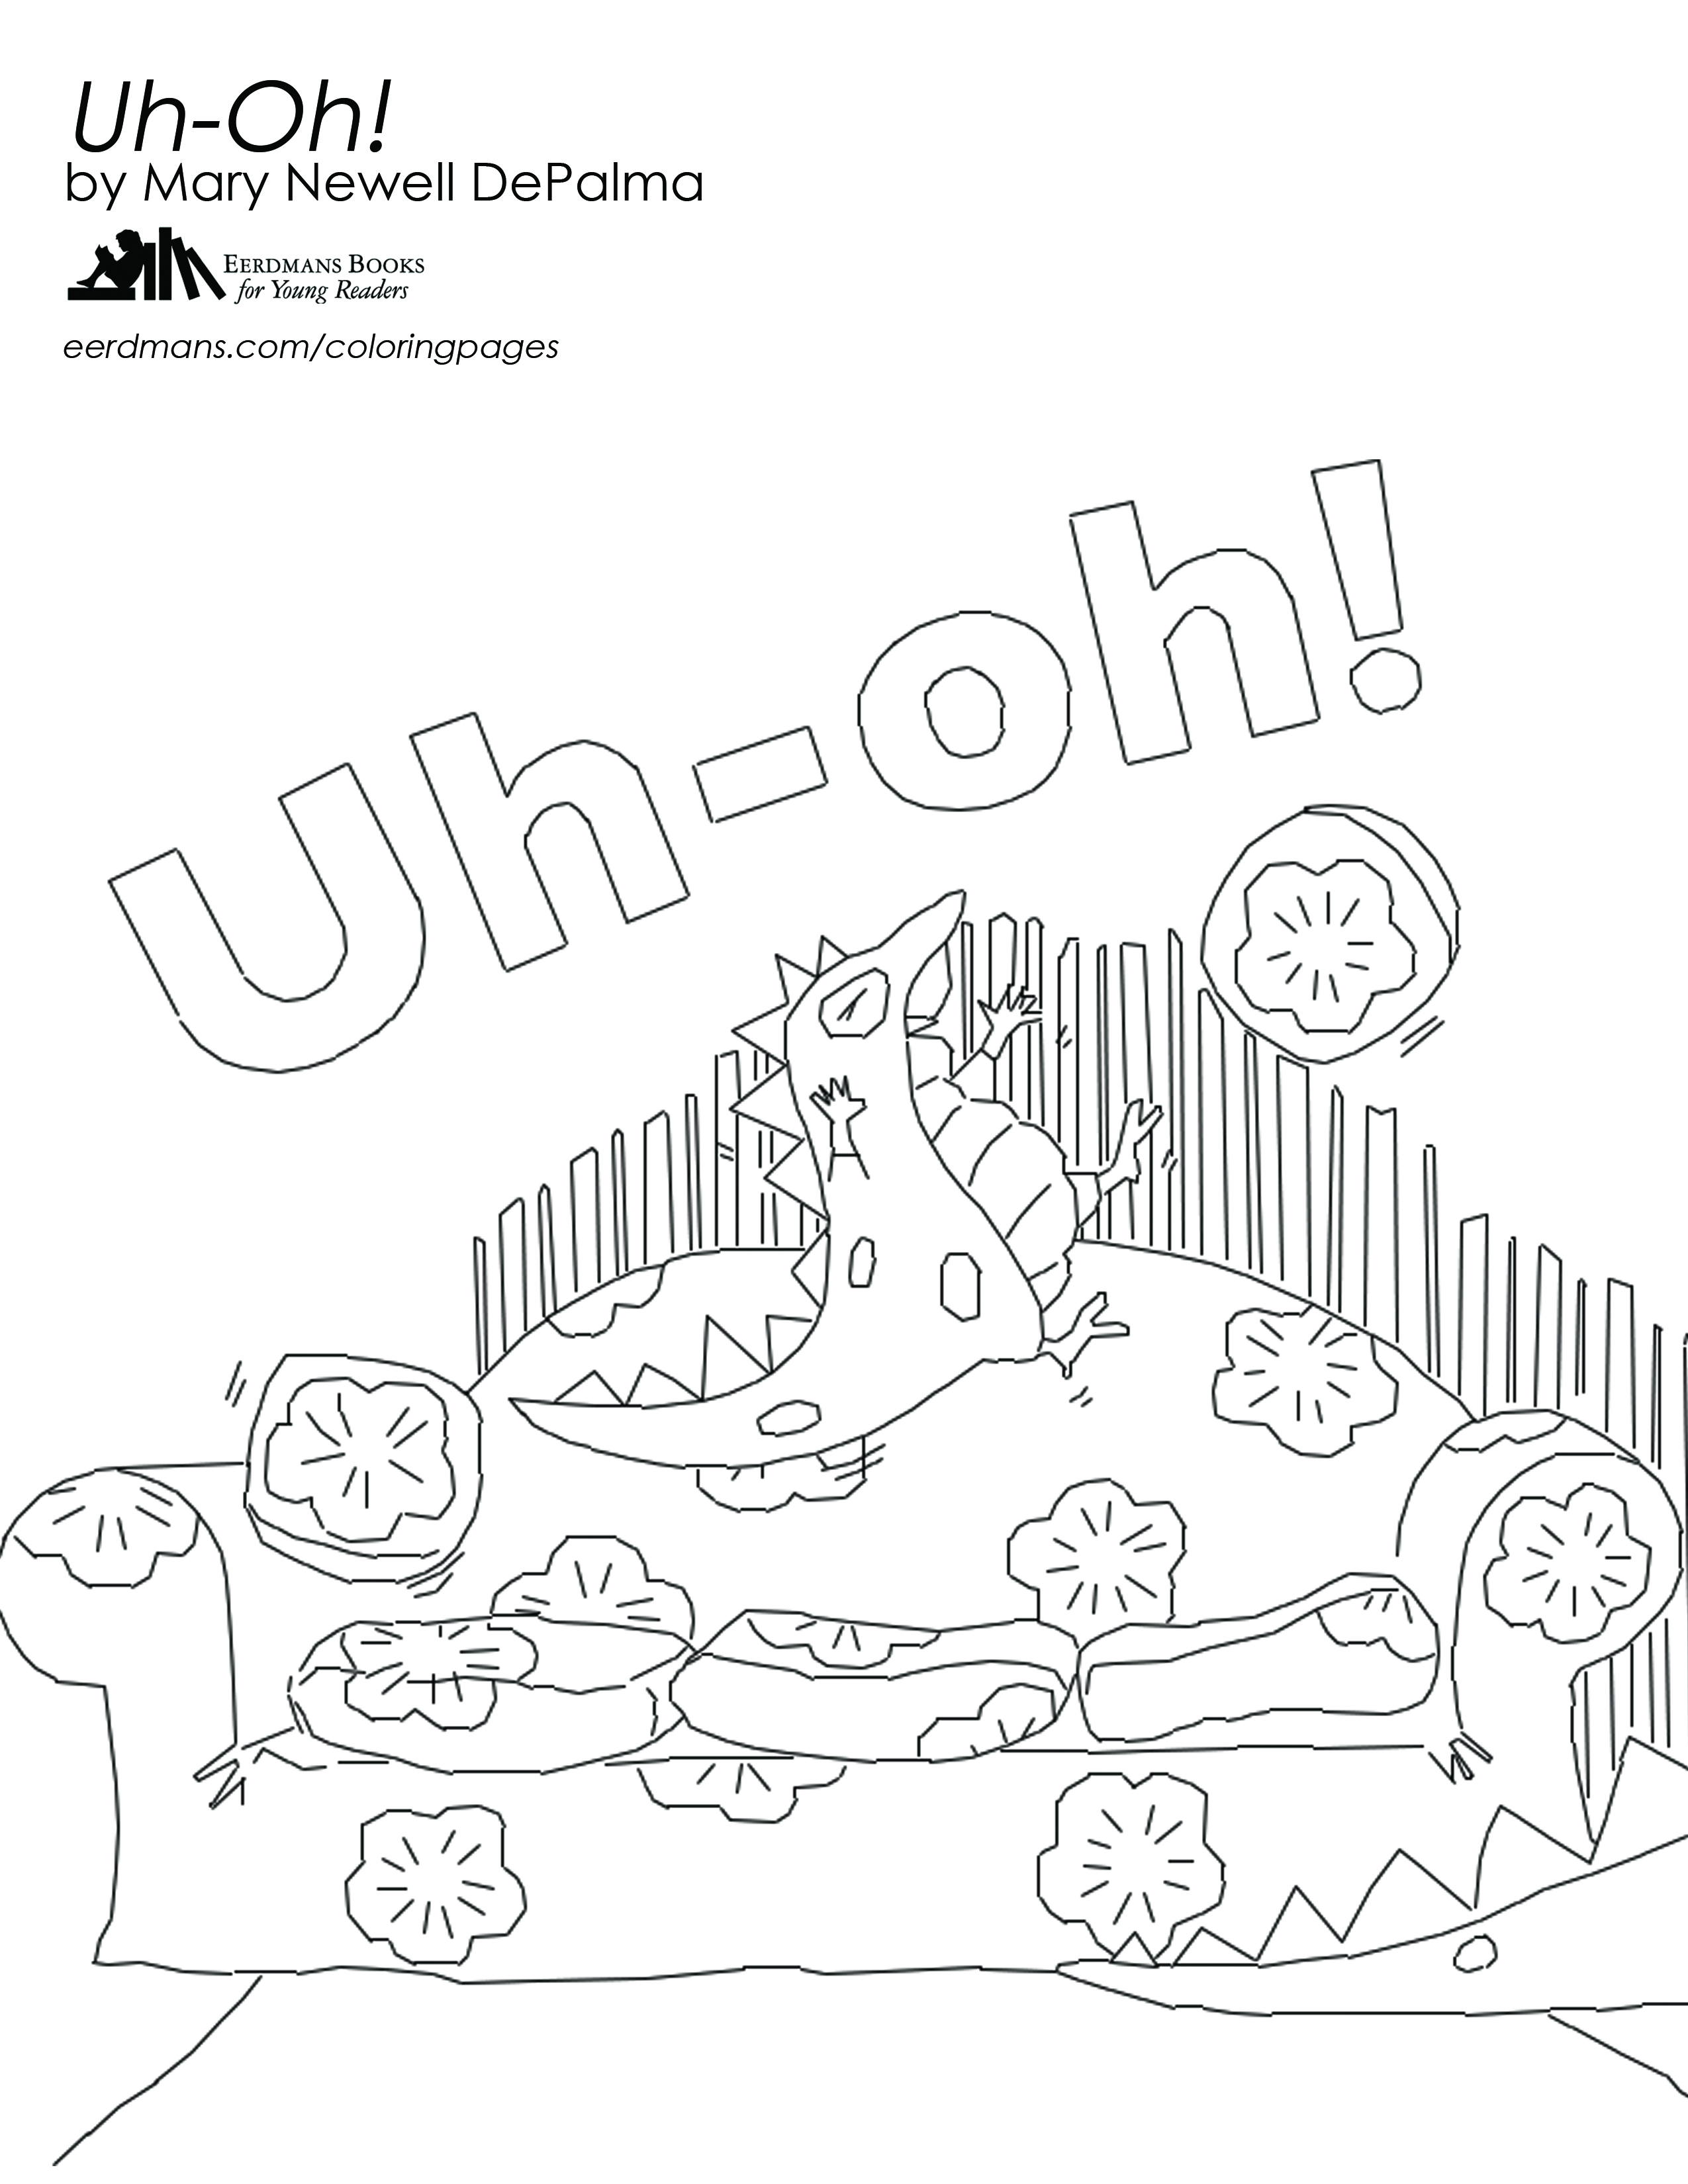 Uh-Oh coloring page